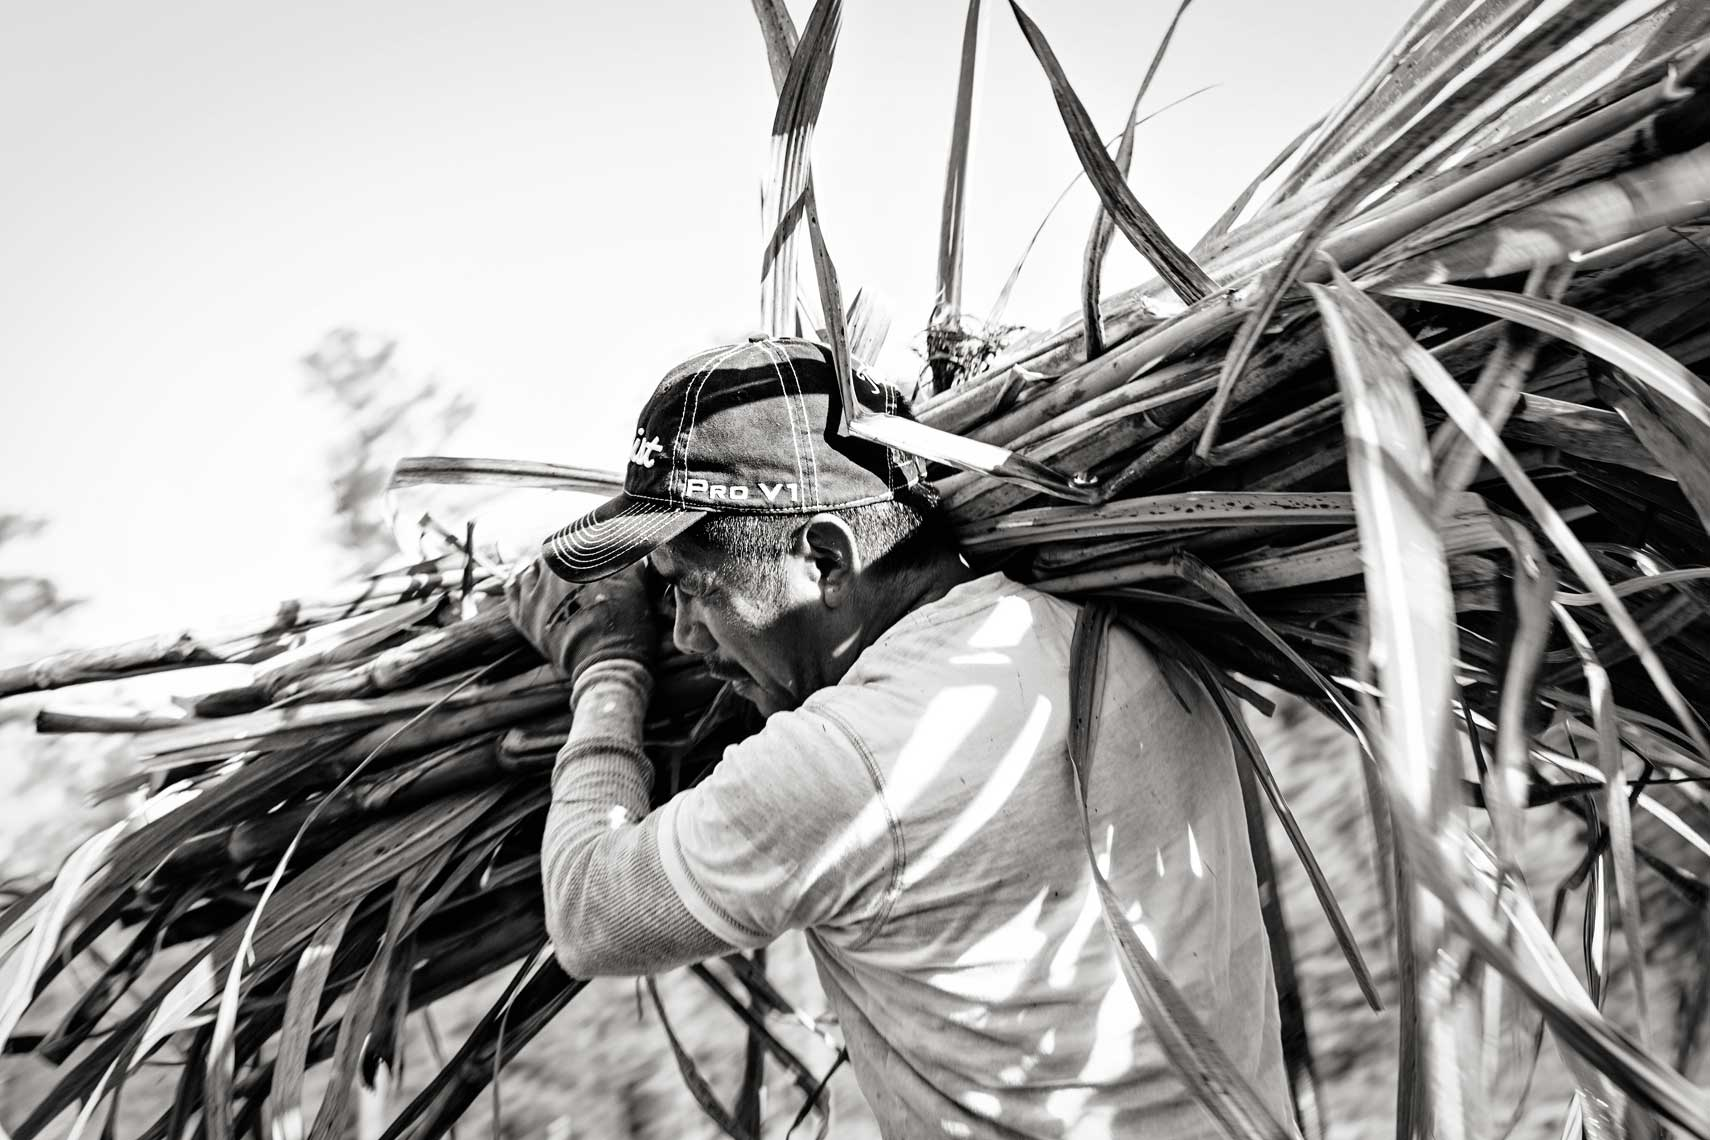 B+W lifestyle photograph of latino farmworker with load of sugarcane